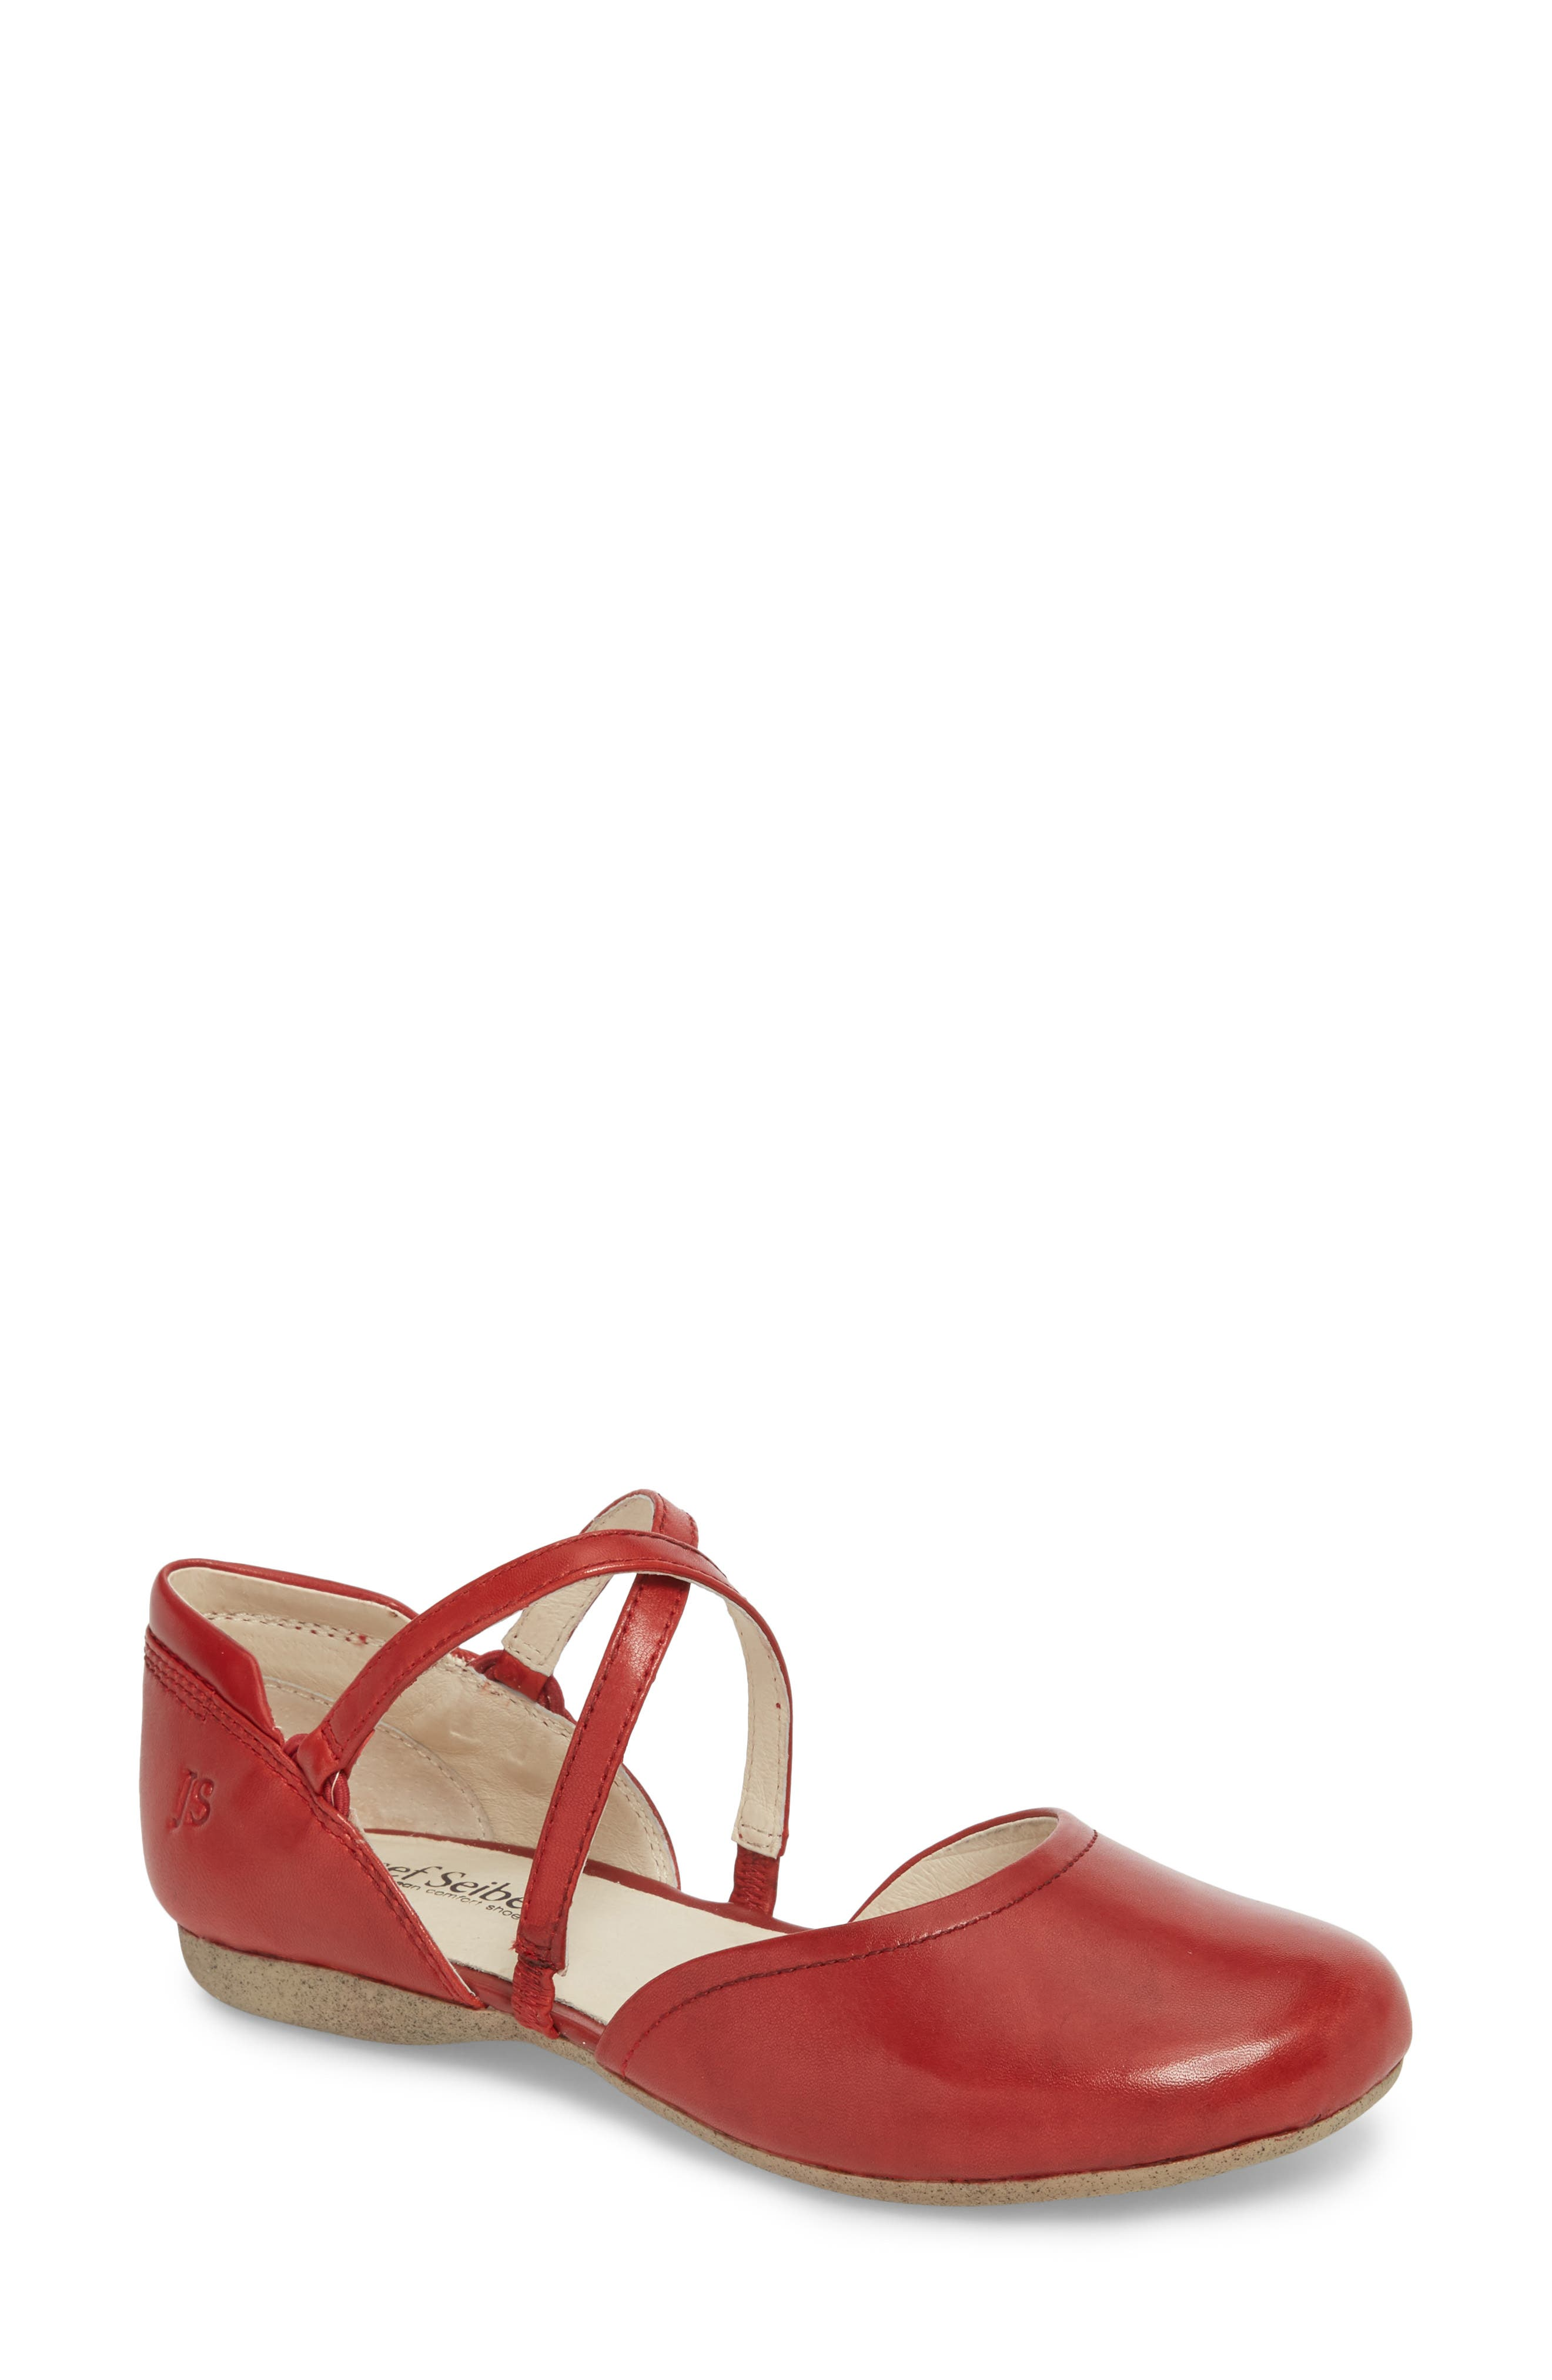 Fiona 41 Flat,                         Main,                         color, Red Leather